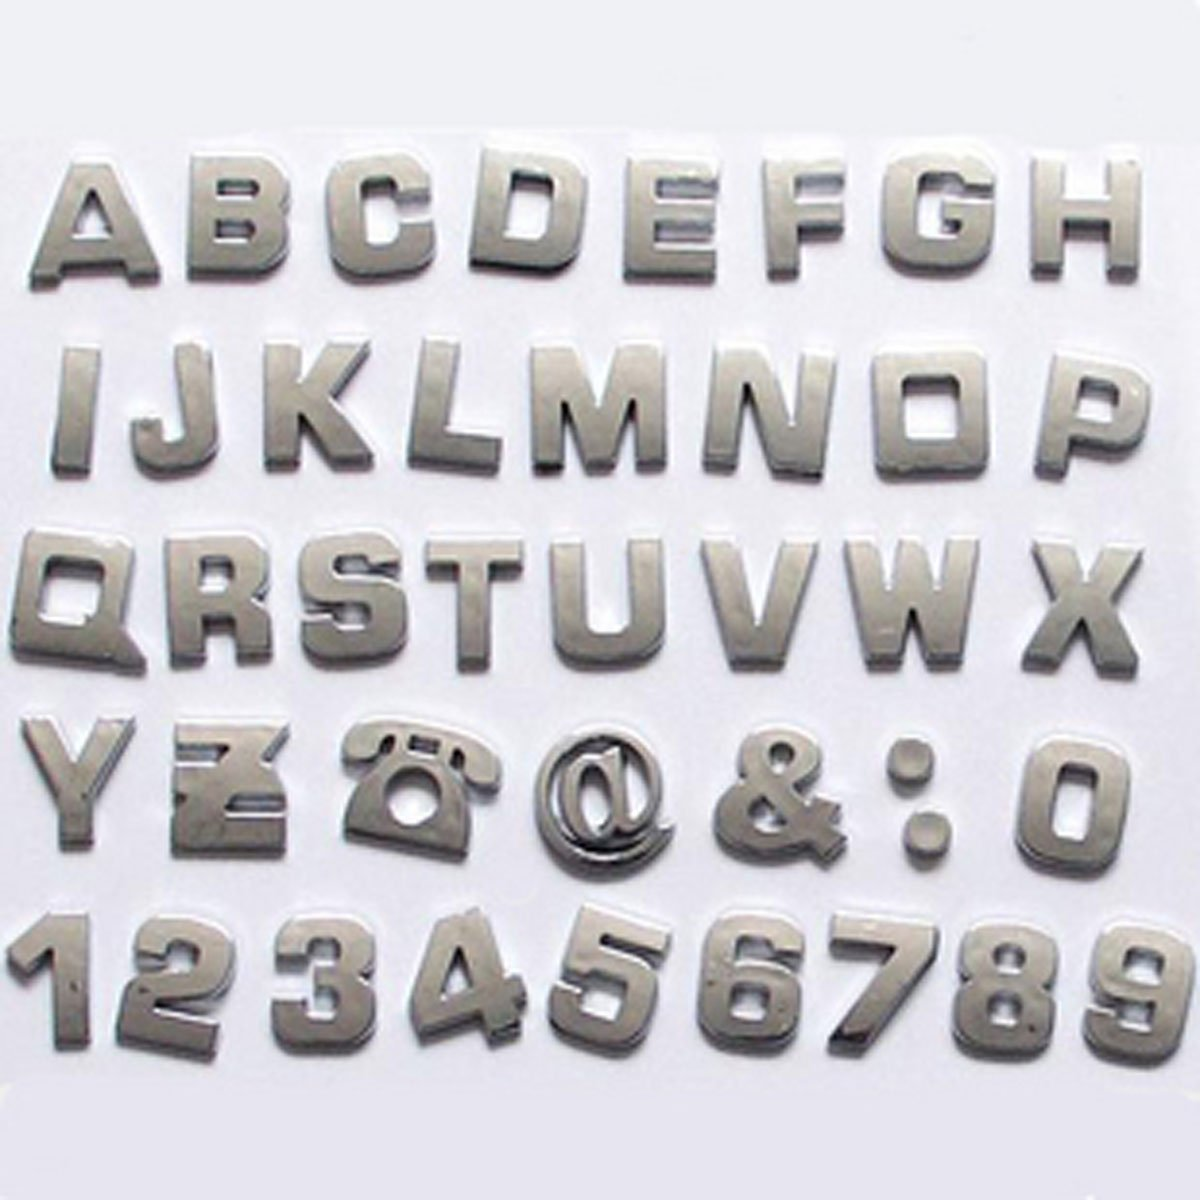 okeler 1 set 40 pcs silver car logo auto 3d emblem badge sticker chrome letters number with free pen